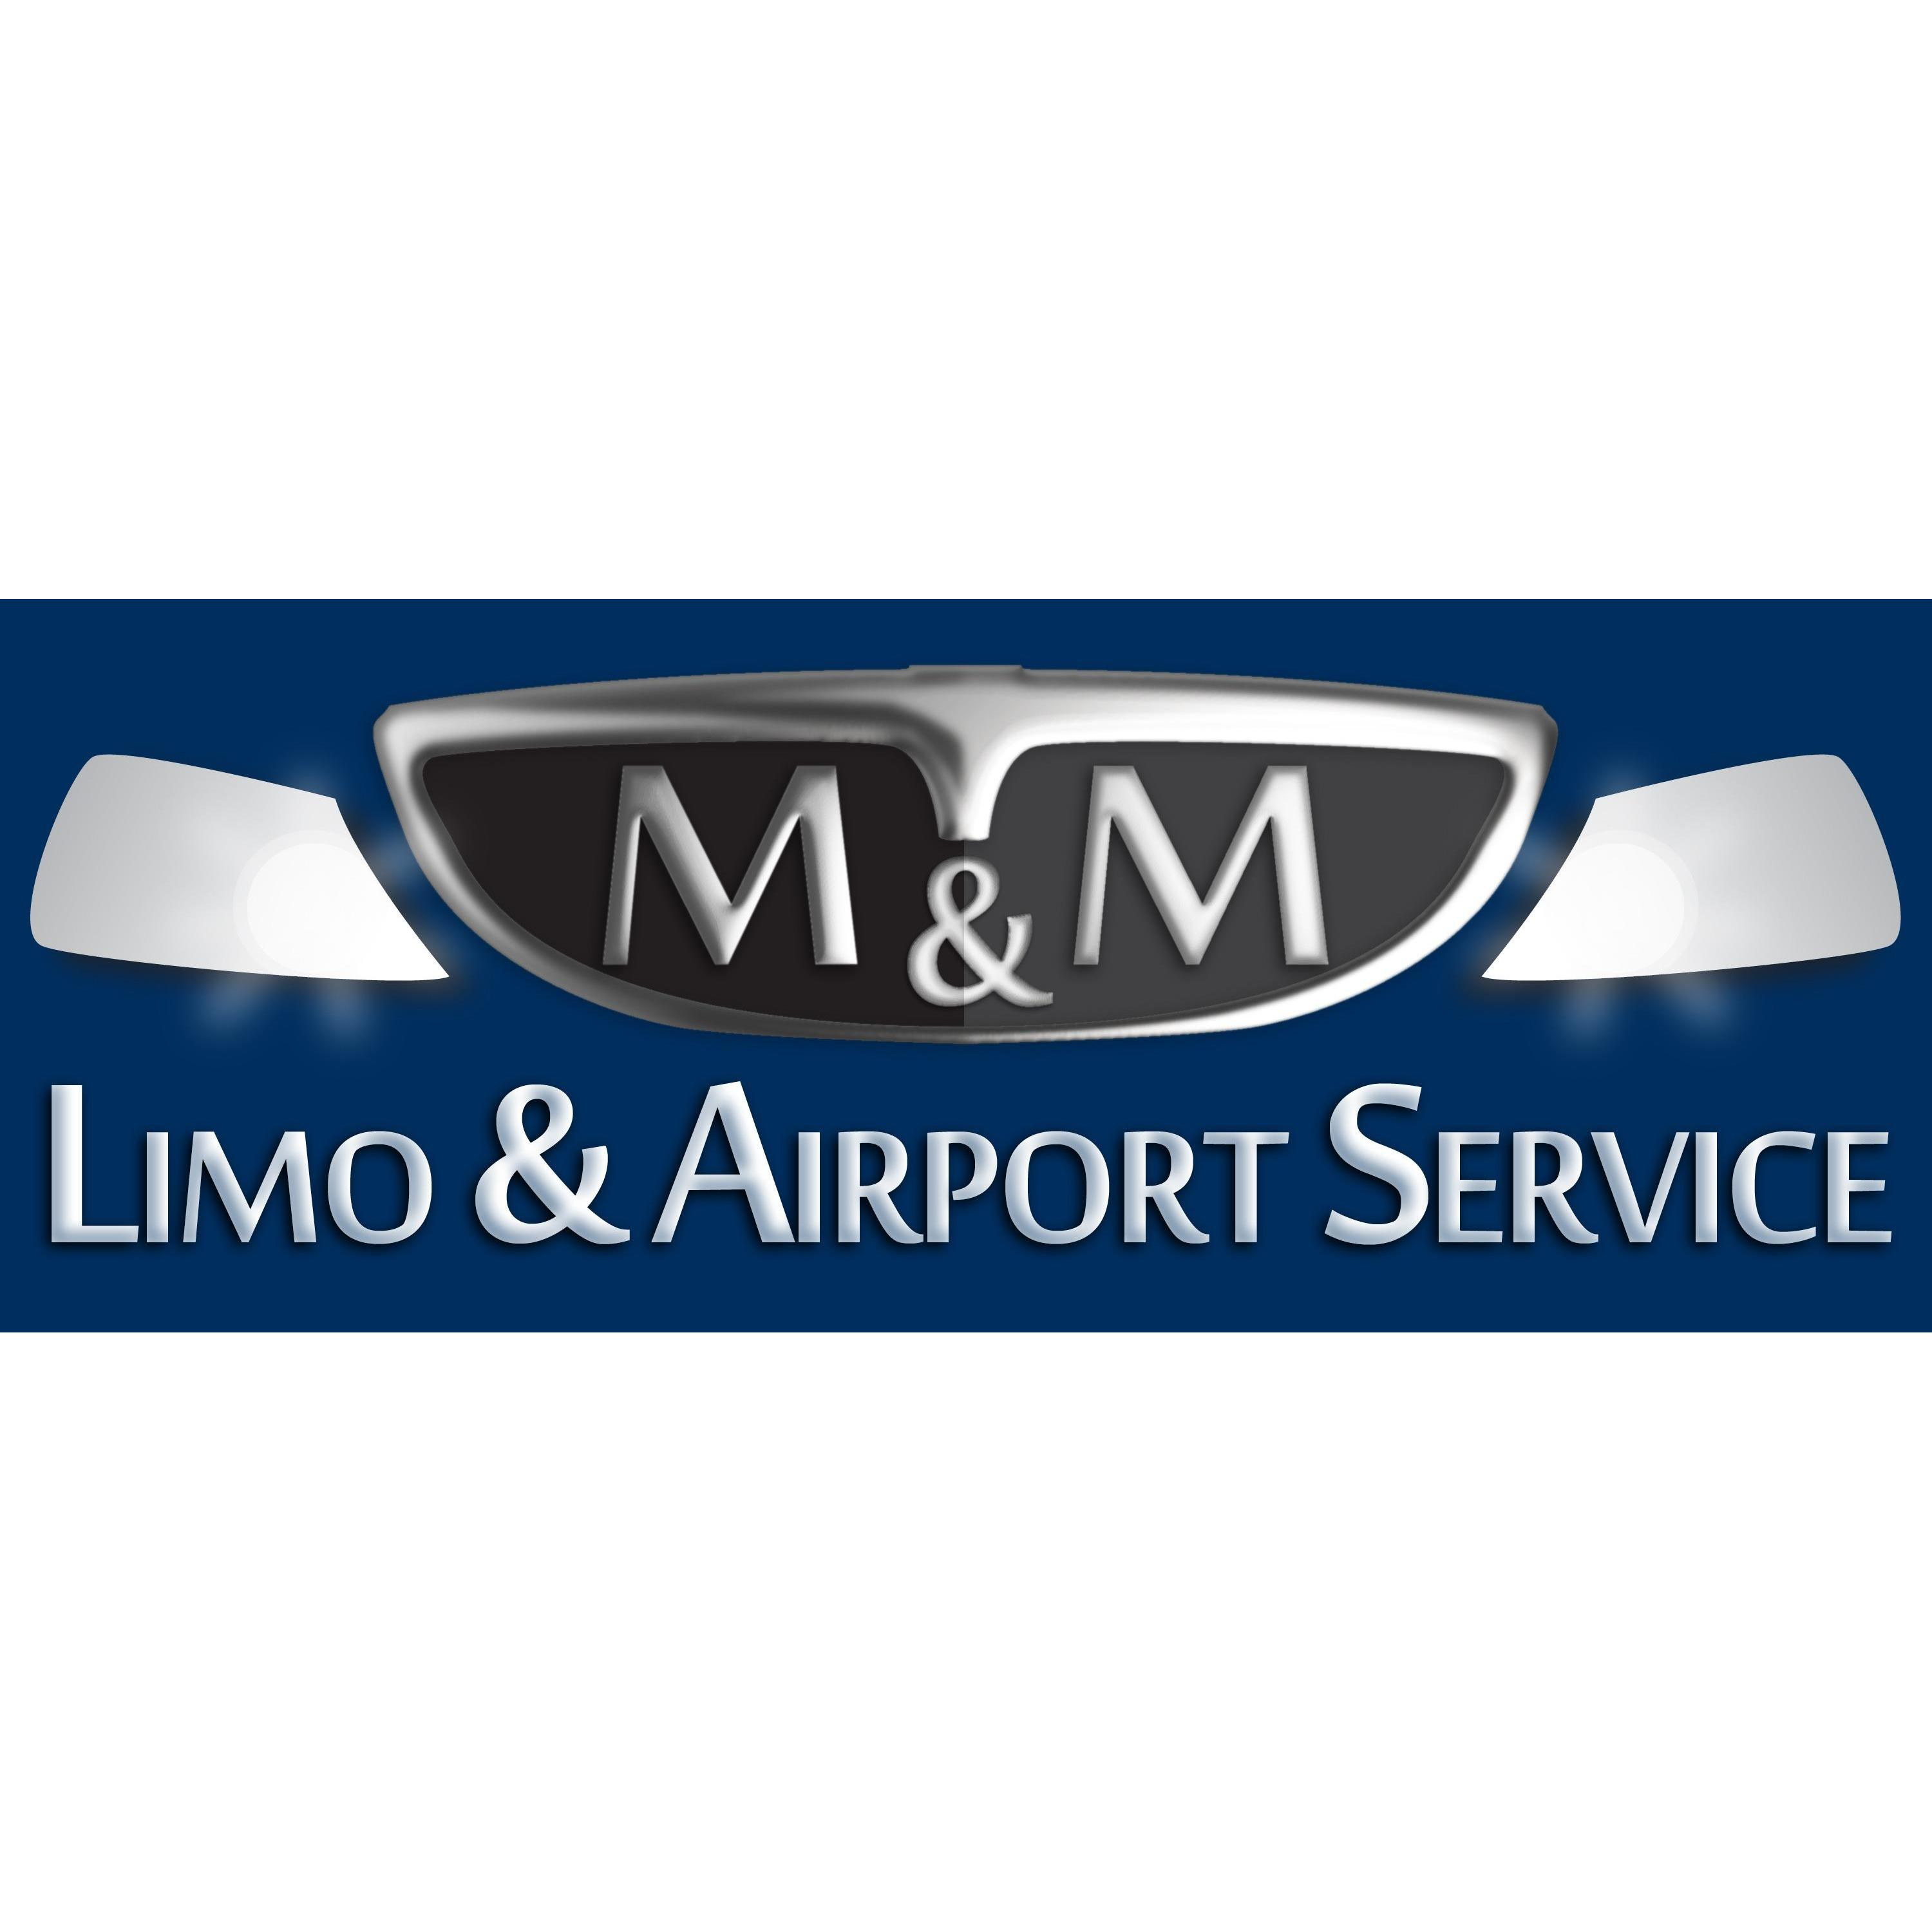 M&M Limo & Airport Service Inc